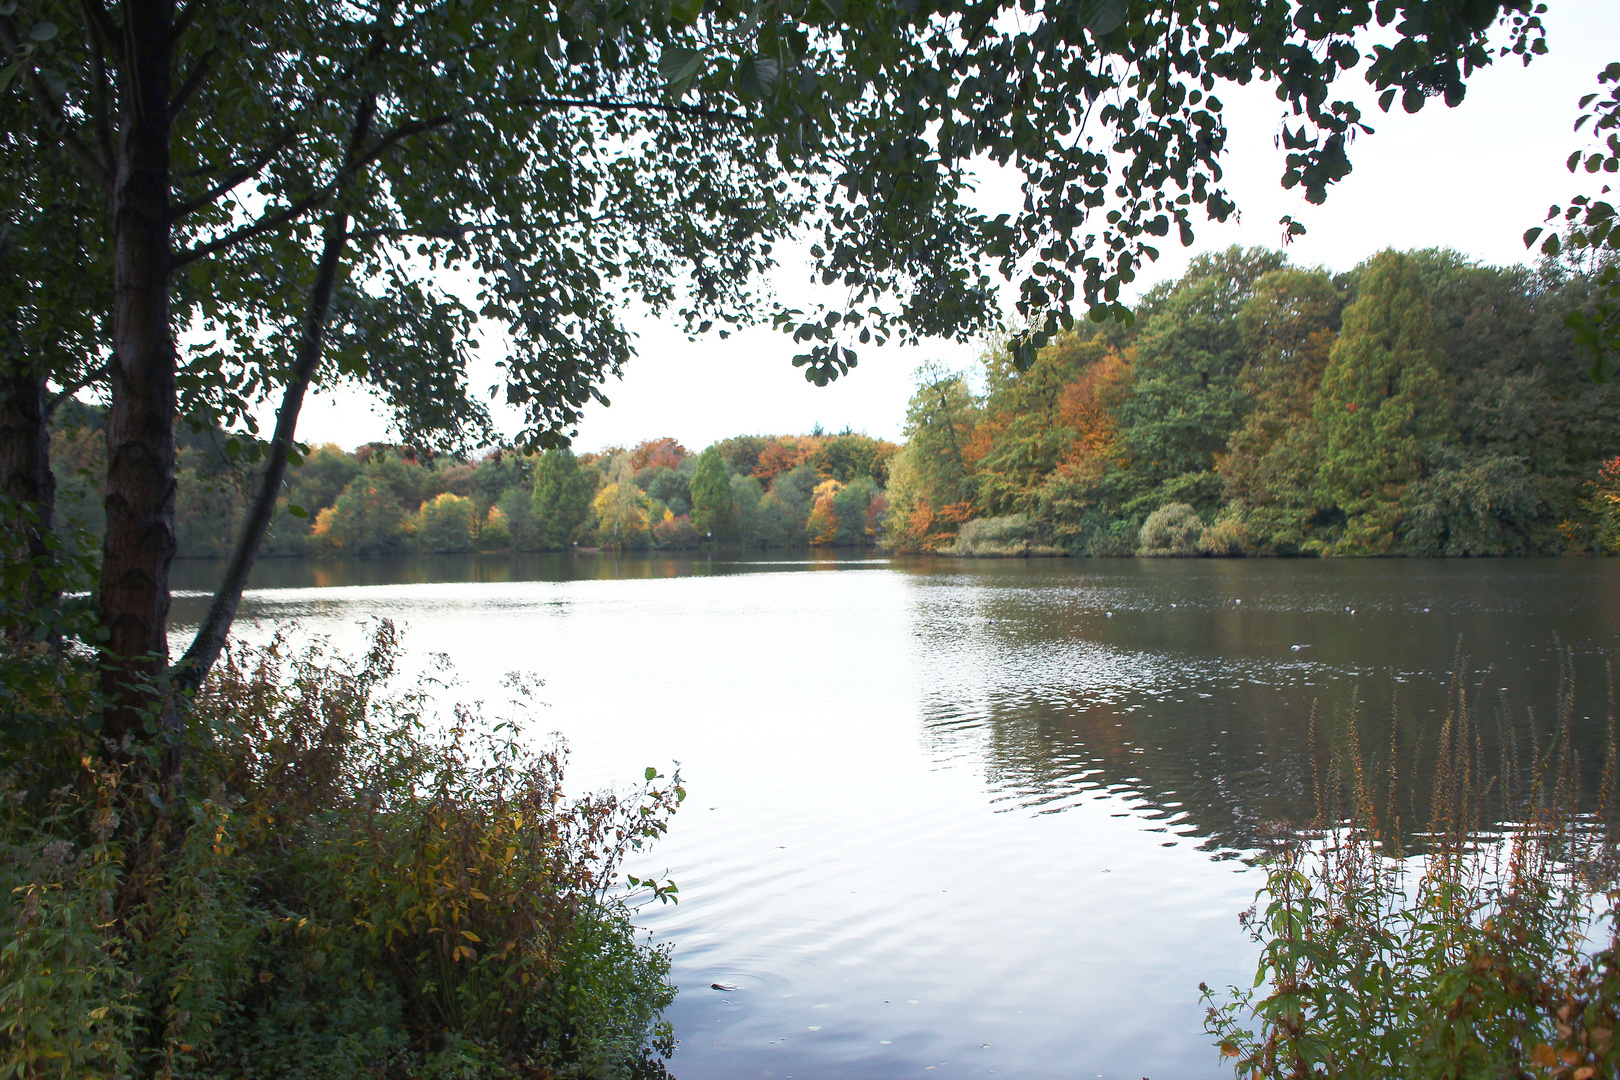 Herrbst am See